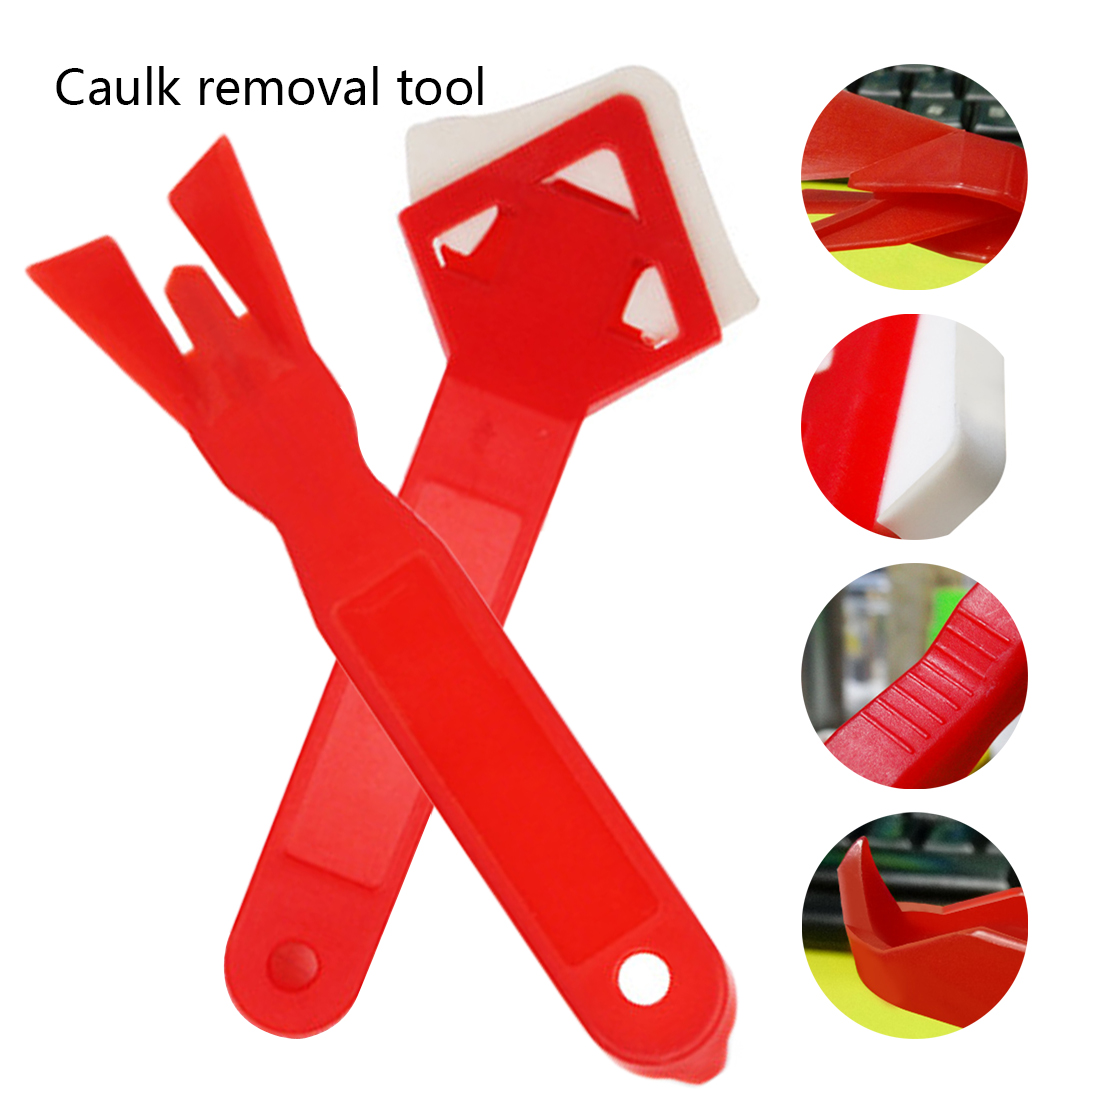 Professional Caulk Away Remover And Finisher Made By Builders Choice Tools Limited Bulider Tools Tile Caulk Cleaner